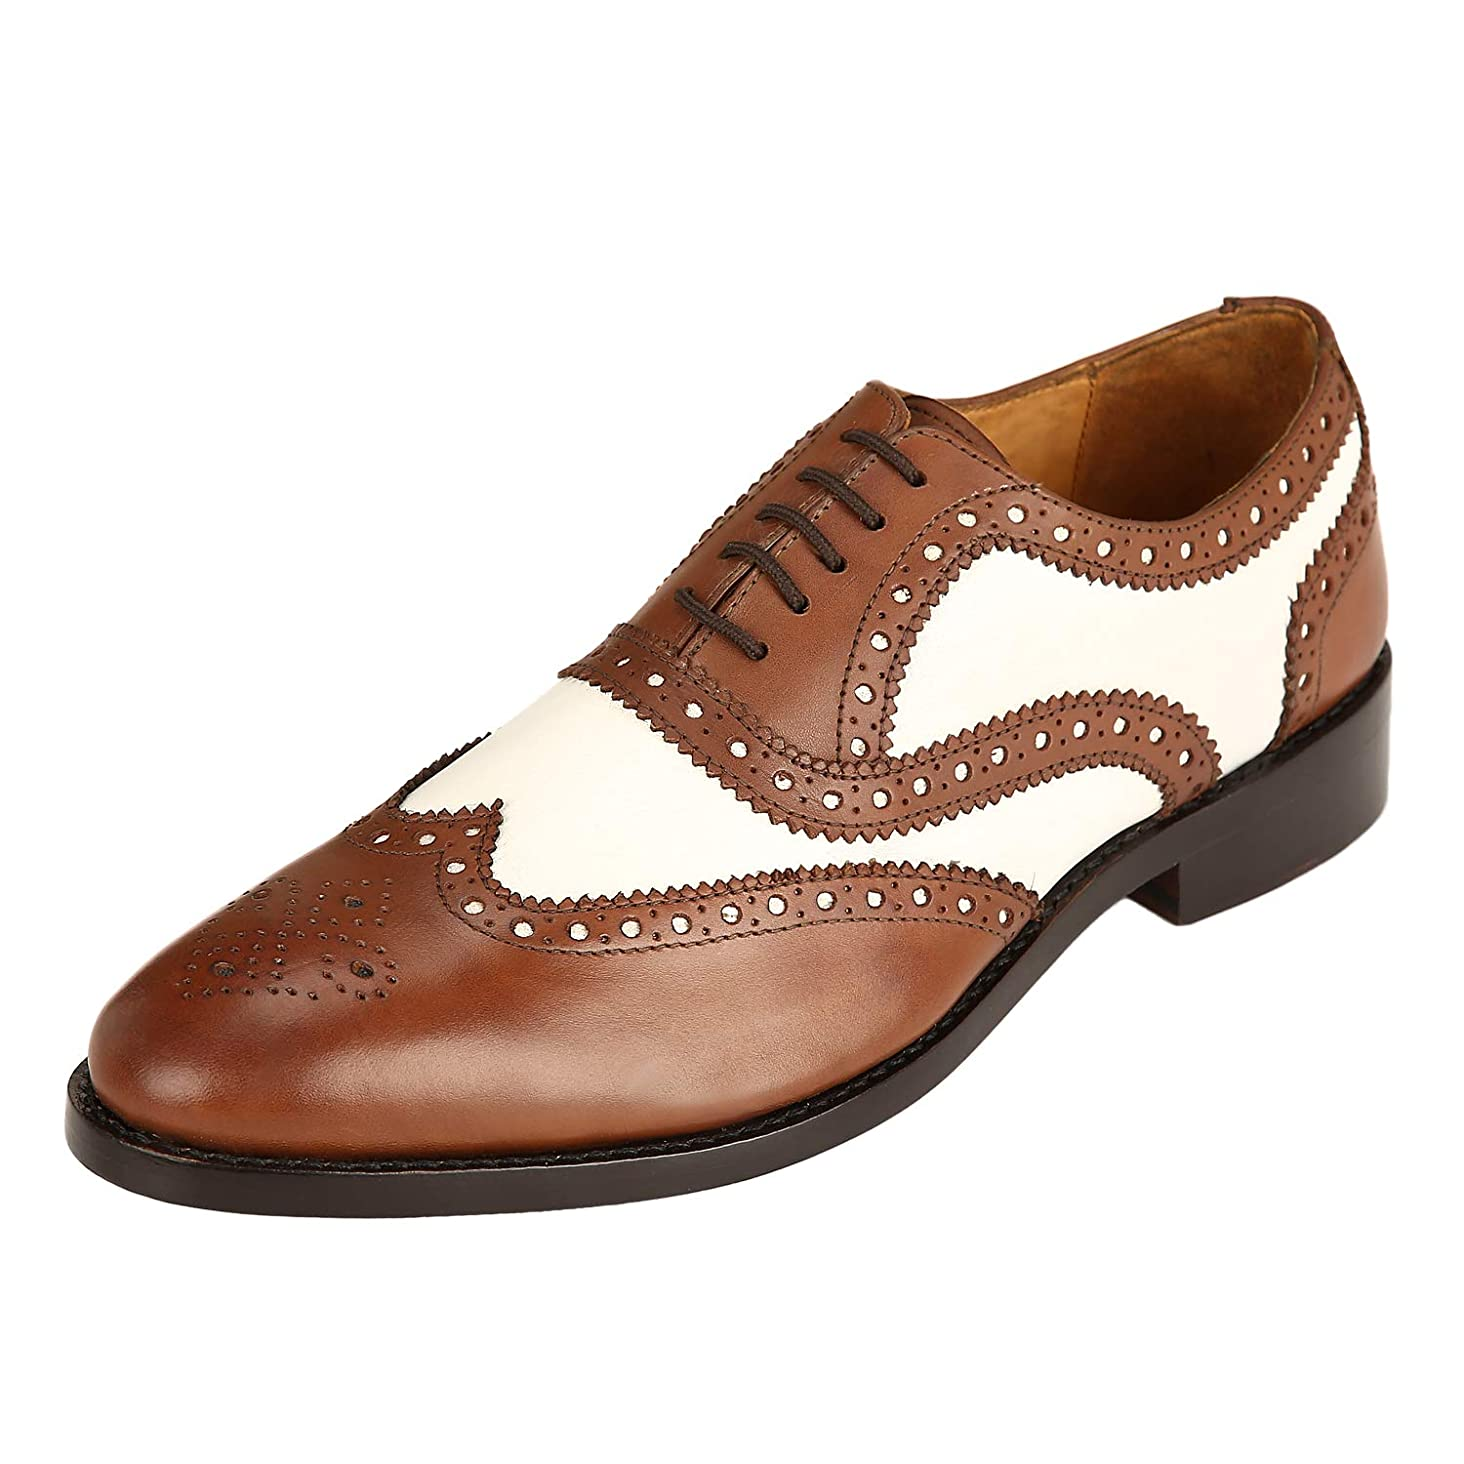 DLT Men's Genuine Imported Leather with Leather Sole English Goodyear Welted Oxford Dress Shoes